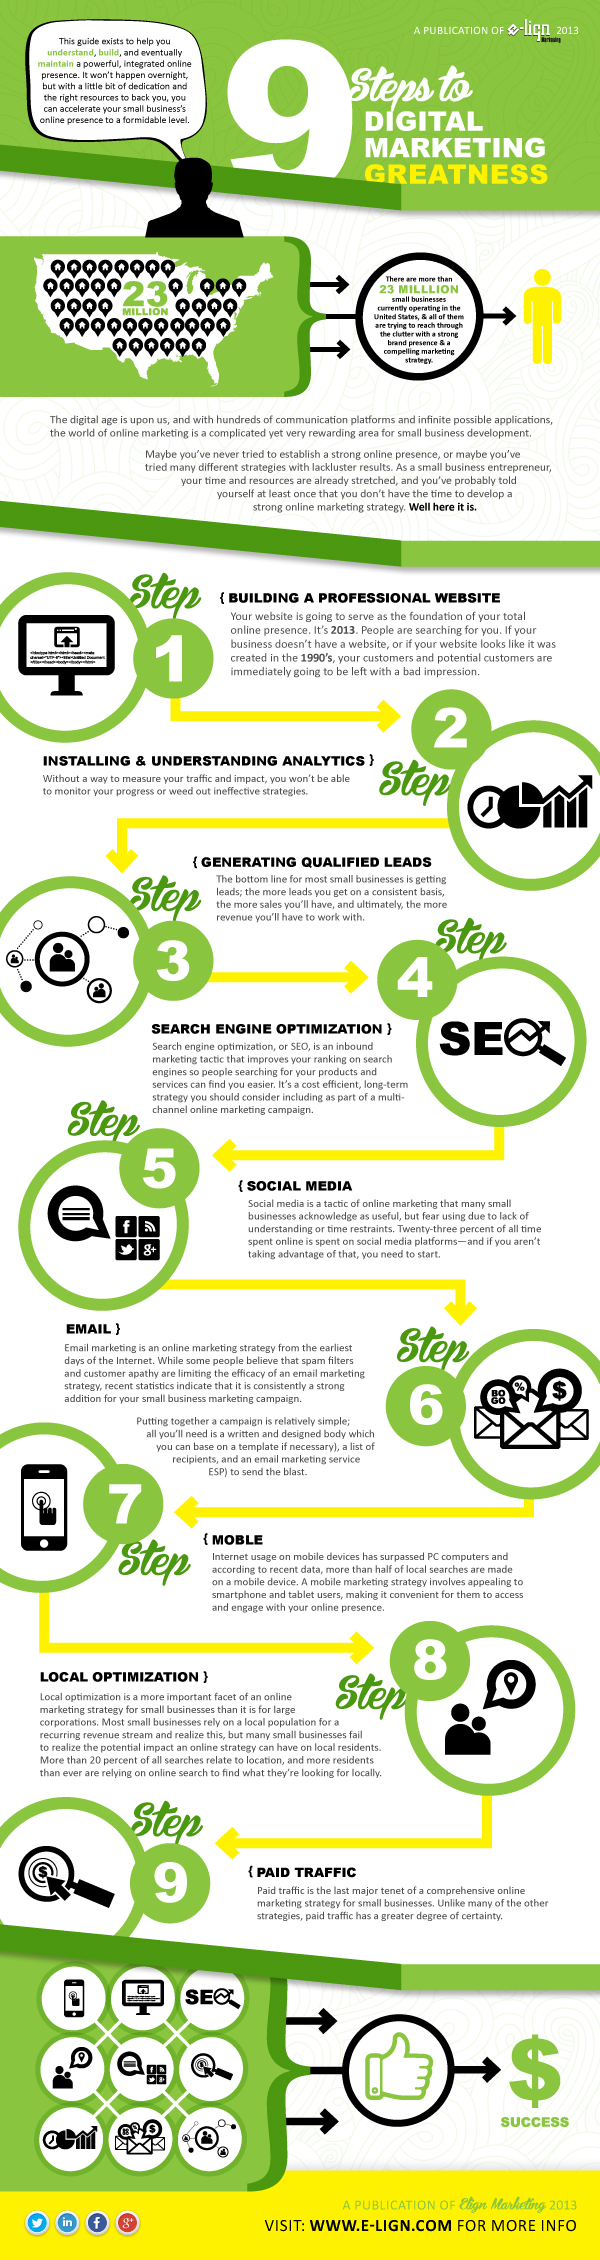 E-lign Digital Marketing Infographic